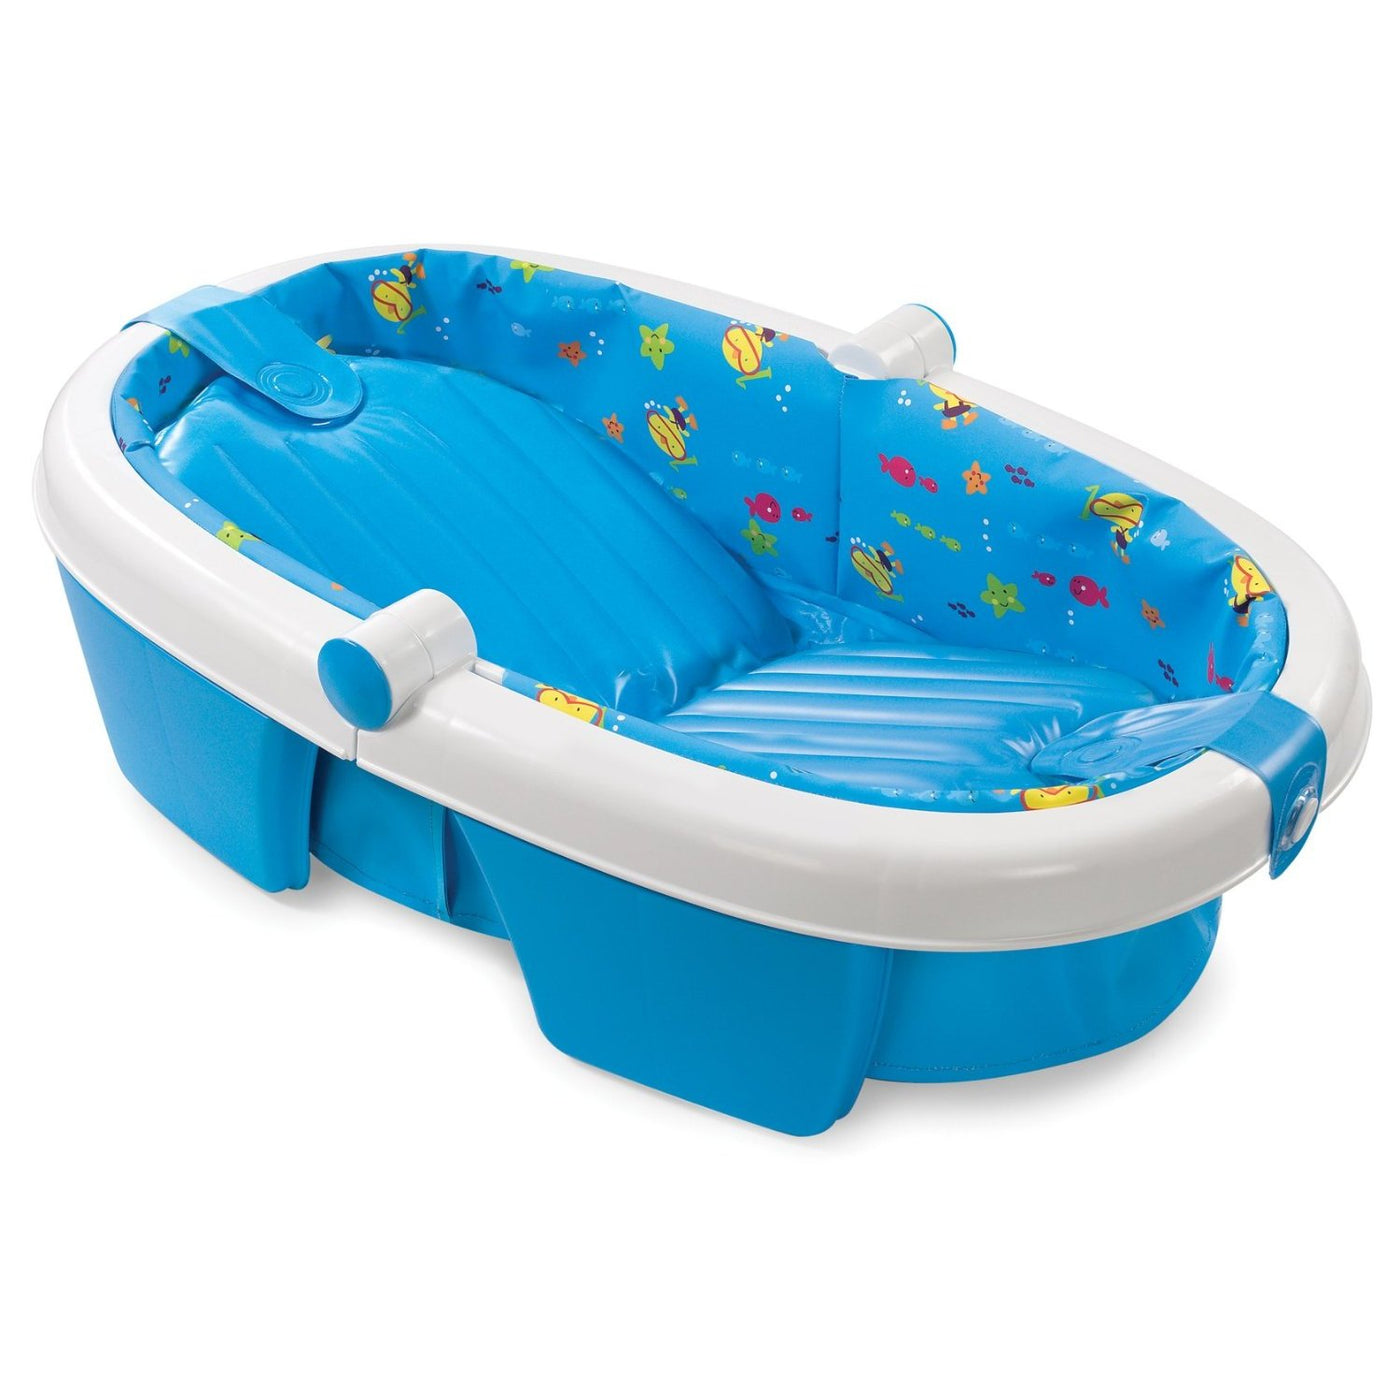 Summer Infant Newborn-to-Toddler Fold Away Baby Bath - Blue | Baby Earth